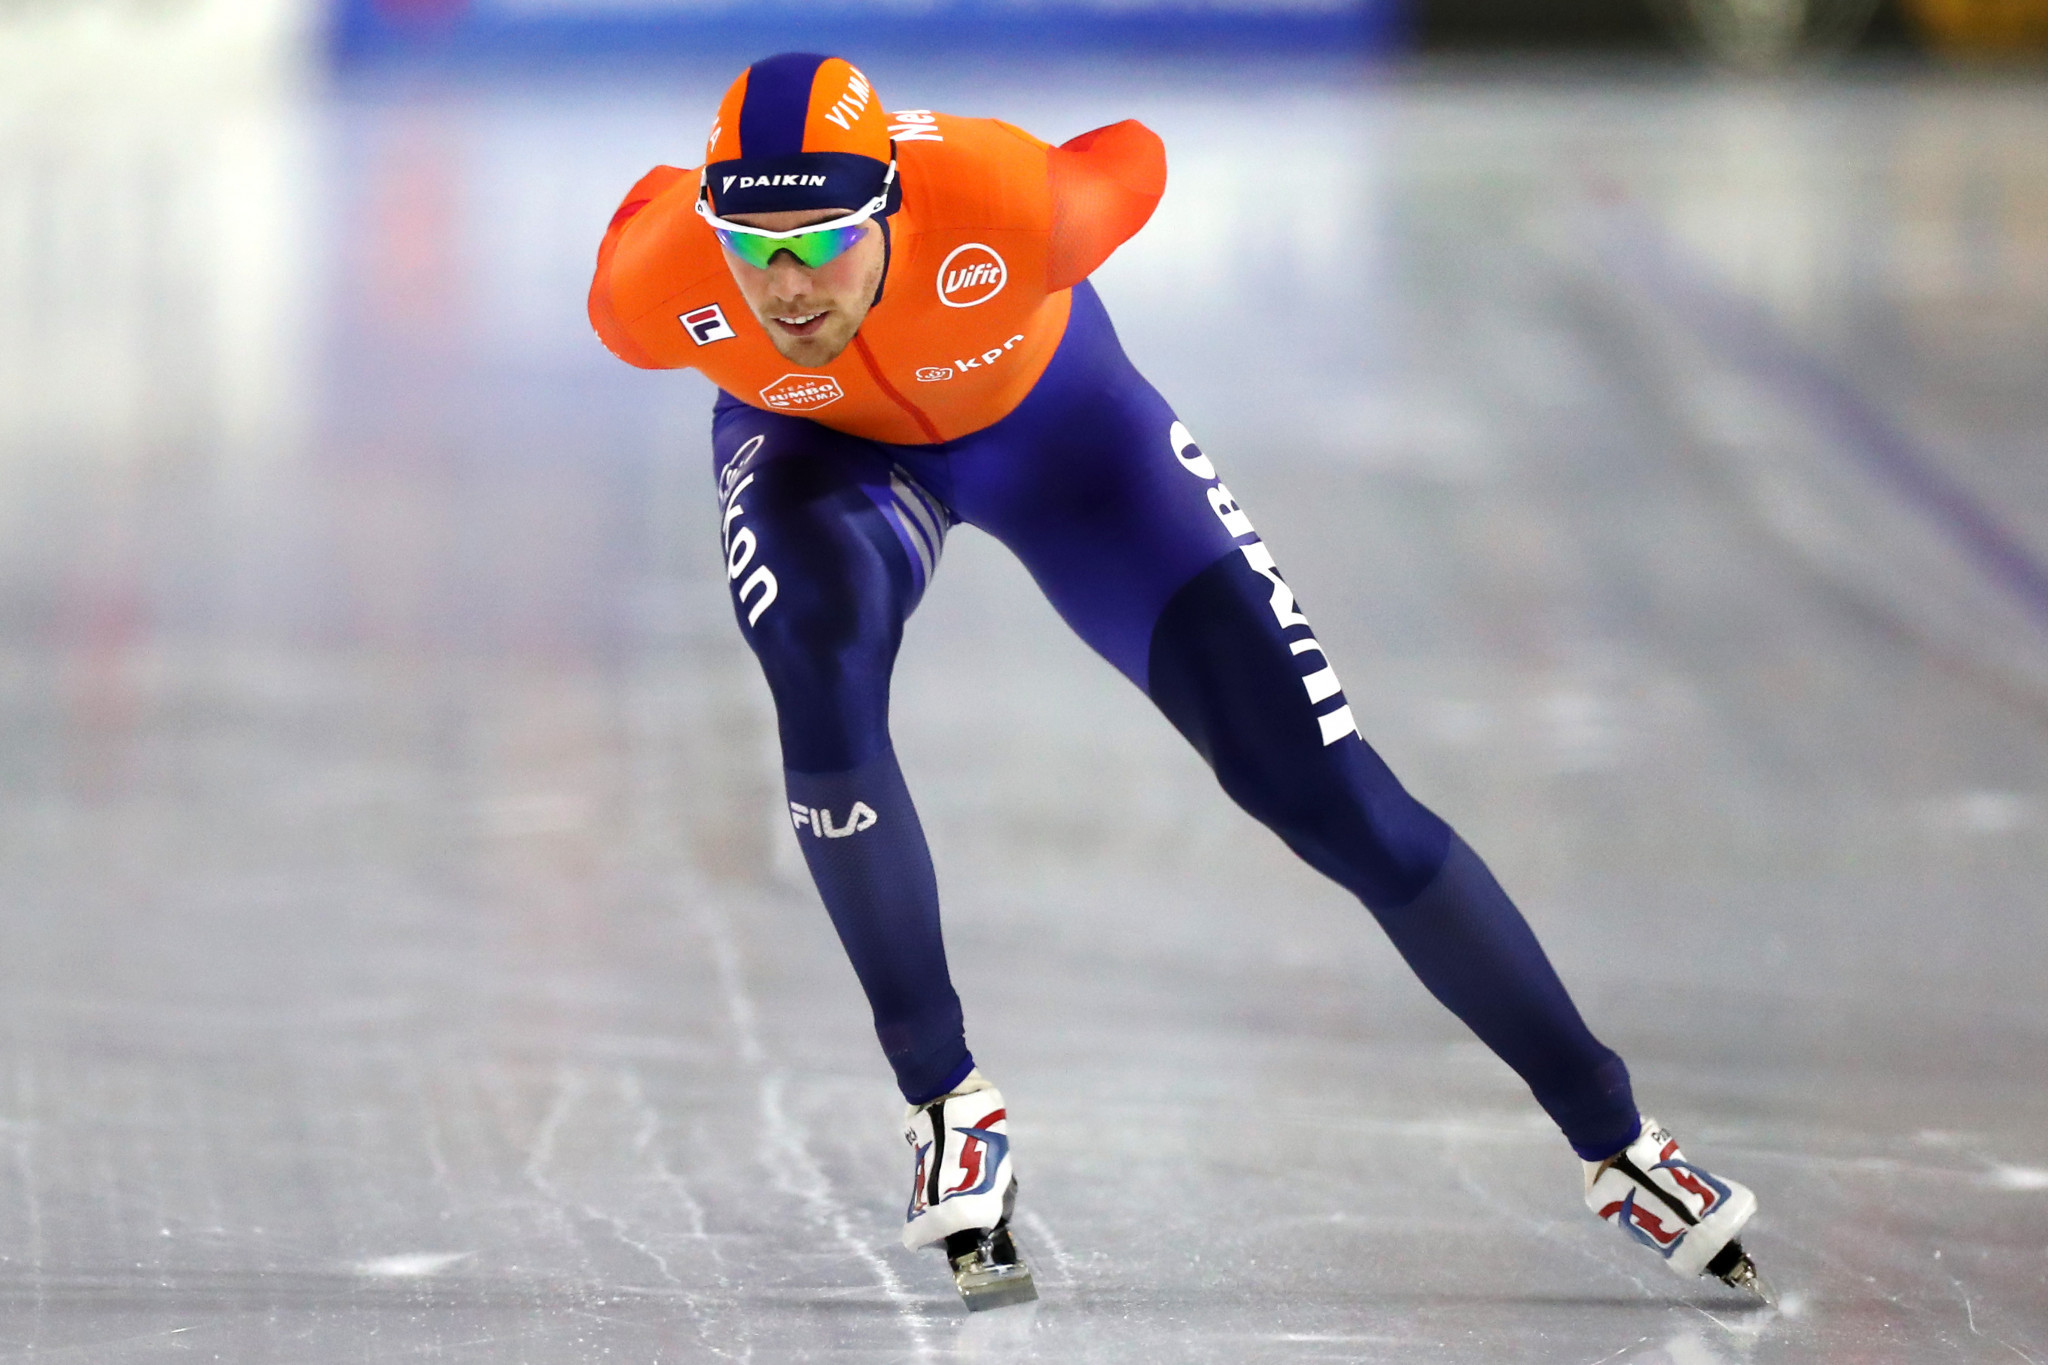 Inaugural World Sprint and World Allround Speed Skating Championships to begin in Hamar